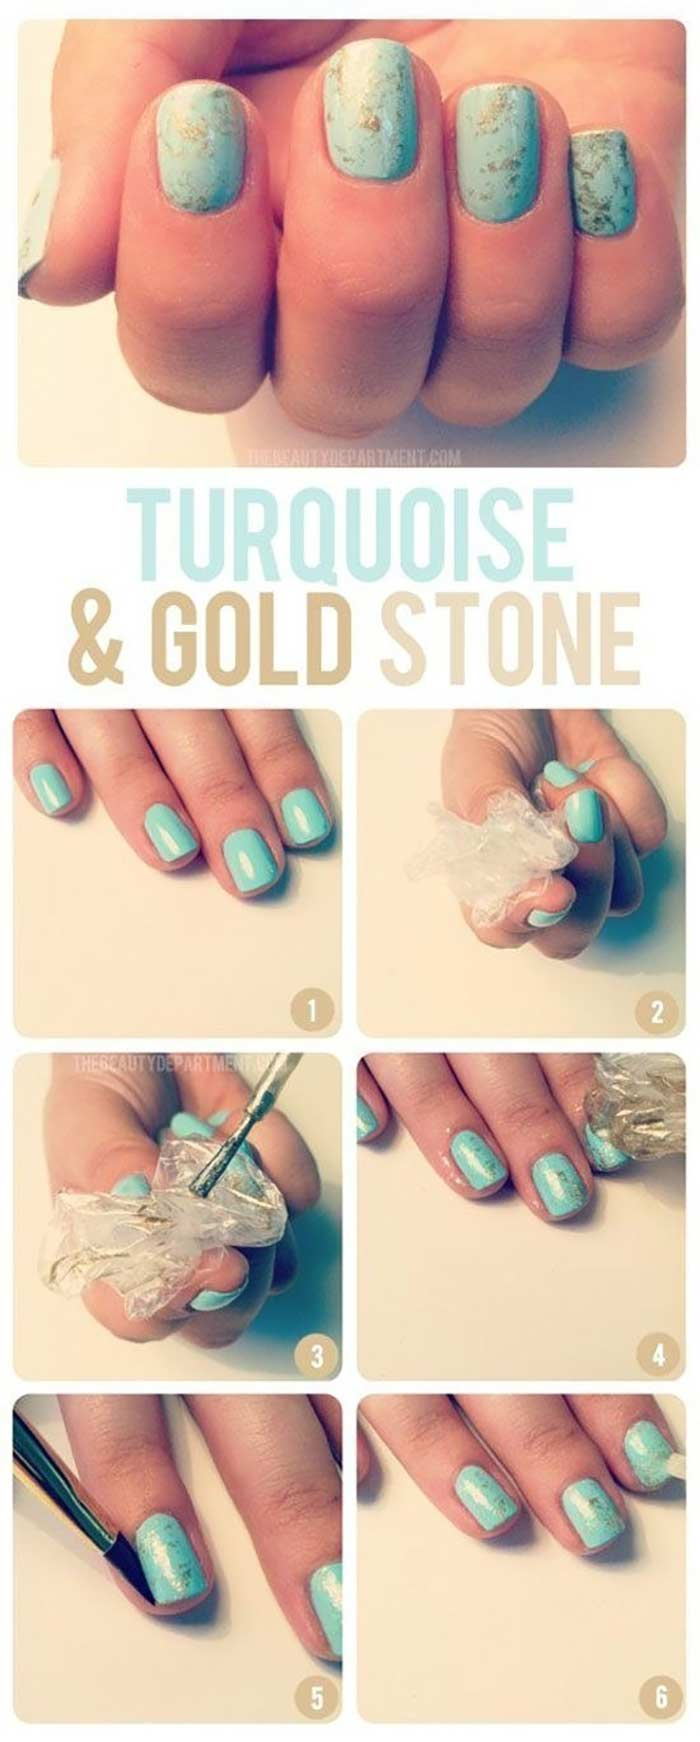 Turquoise and Gold Nails - Cute Nail Designs for Short Nails